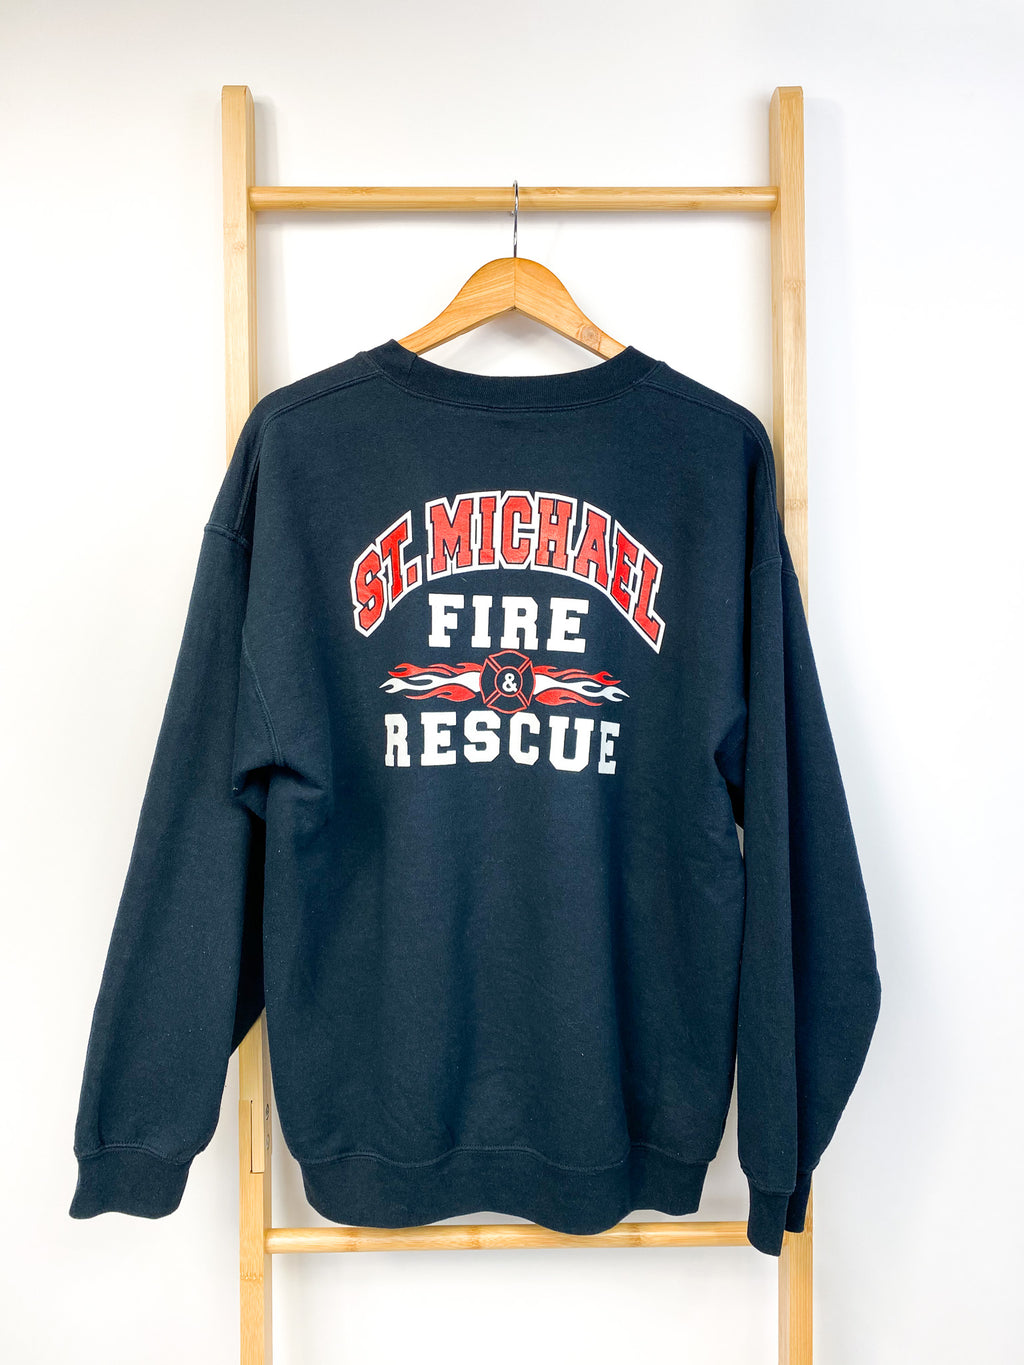 Vintage St. Michael Fire & Rescue Sweatshirt (L)